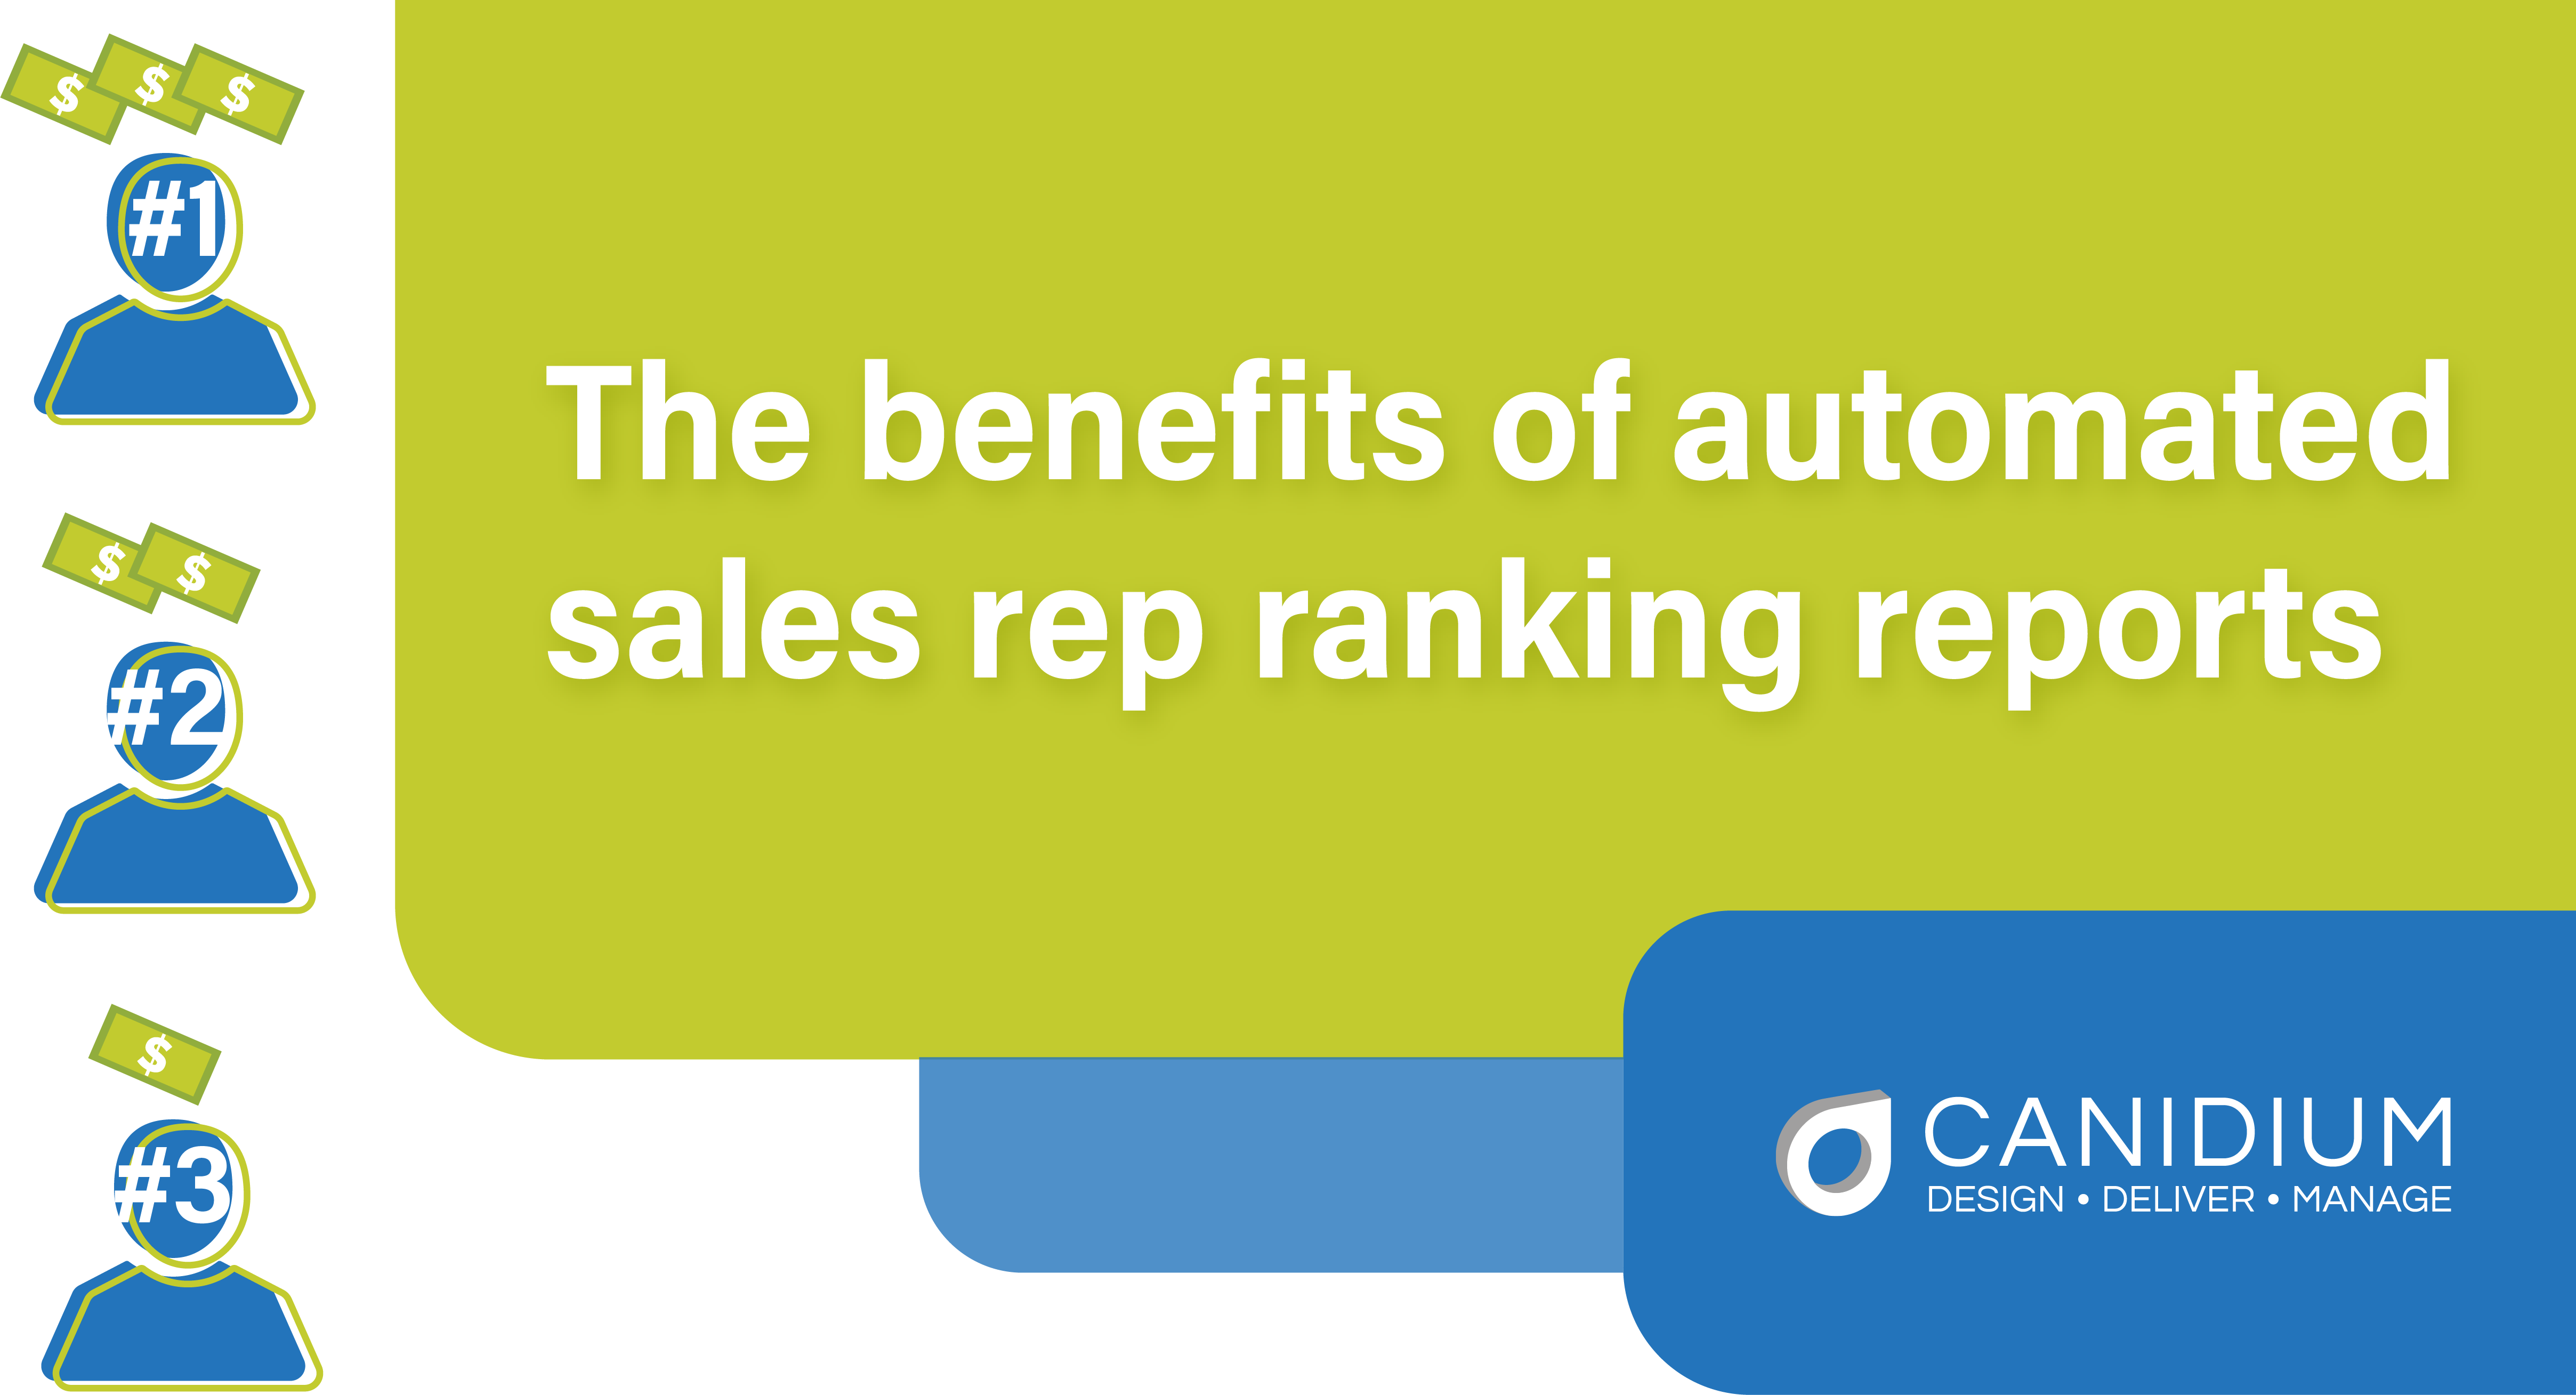 The benefits of automated sales rep ranking reports